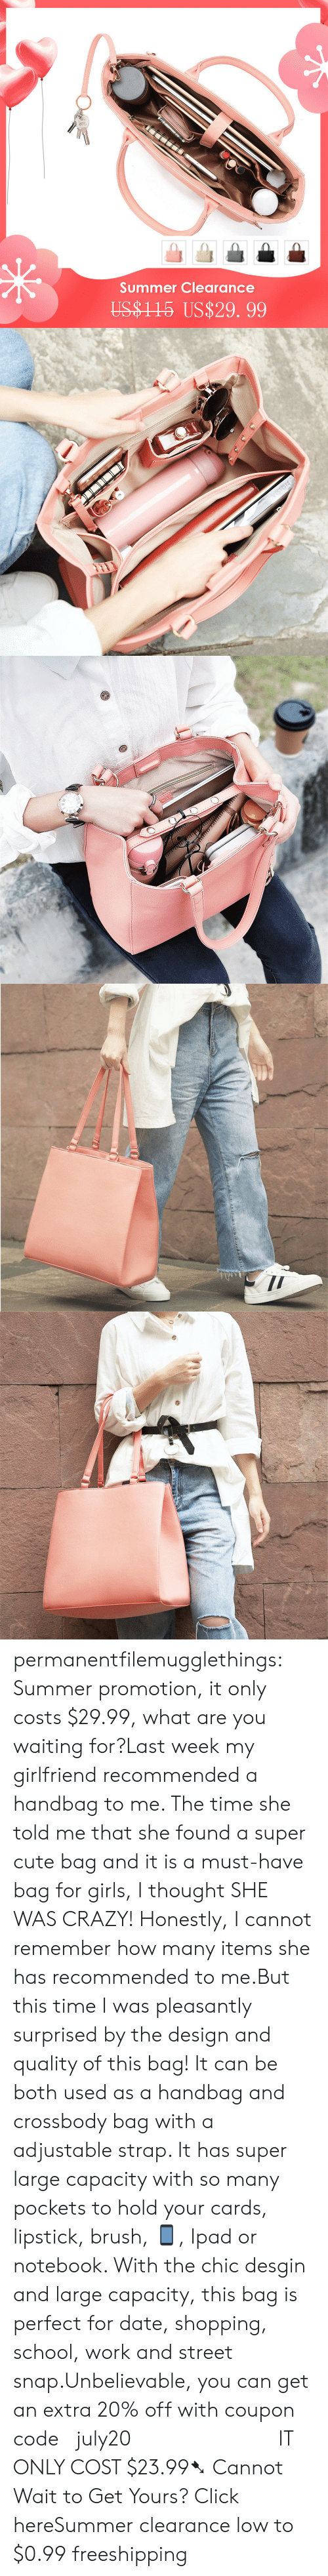 Click, Crazy, and Cute: Summer Clearance  US$1 15 US$29. 99 permanentfilemugglethings:  Summer promotion, it only costs $29.99, what are you waiting for?Last week my girlfriend recommended a handbag to me. The time she told me that she found a super cute bag and it is a must-have bag for girls, I thought SHE WAS CRAZY! Honestly, I cannot remember how many items she has recommended to me.But this time I was pleasantly surprised by the design and quality of this bag! It can be both used as a handbag and crossbody bag with a adjustable strap. It has super large capacity with so many pockets to hold your cards, lipstick, brush, 📱, Ipad or notebook. With the chic desgin and large capacity, this bag is perfect for date, shopping, school, work and street snap.Unbelievable, you can get an extra 20% off with coupon code :july20             IT ONLY COST $23.99➷ Cannot Wait to Get Yours? Click hereSummer clearance low to $0.99  freeshipping